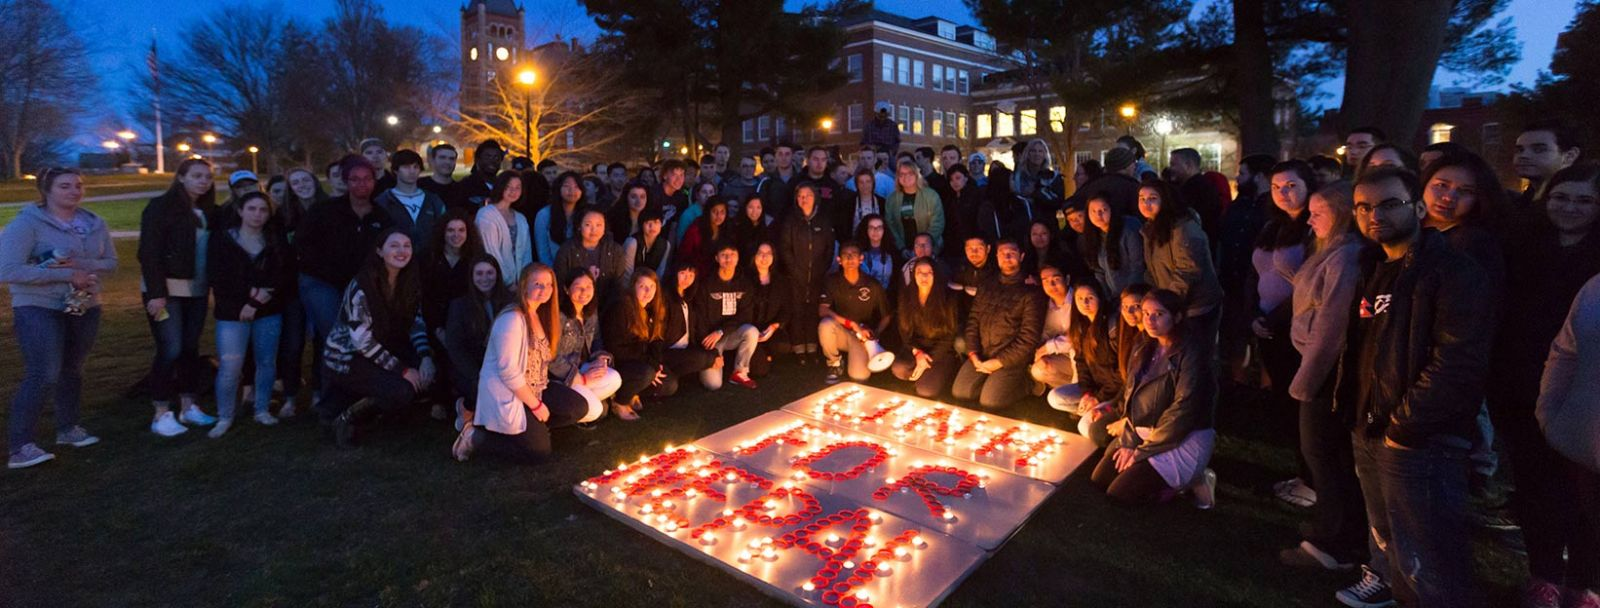 Candlelight vigil for Nepalese earthquake victims and survivors at UNH